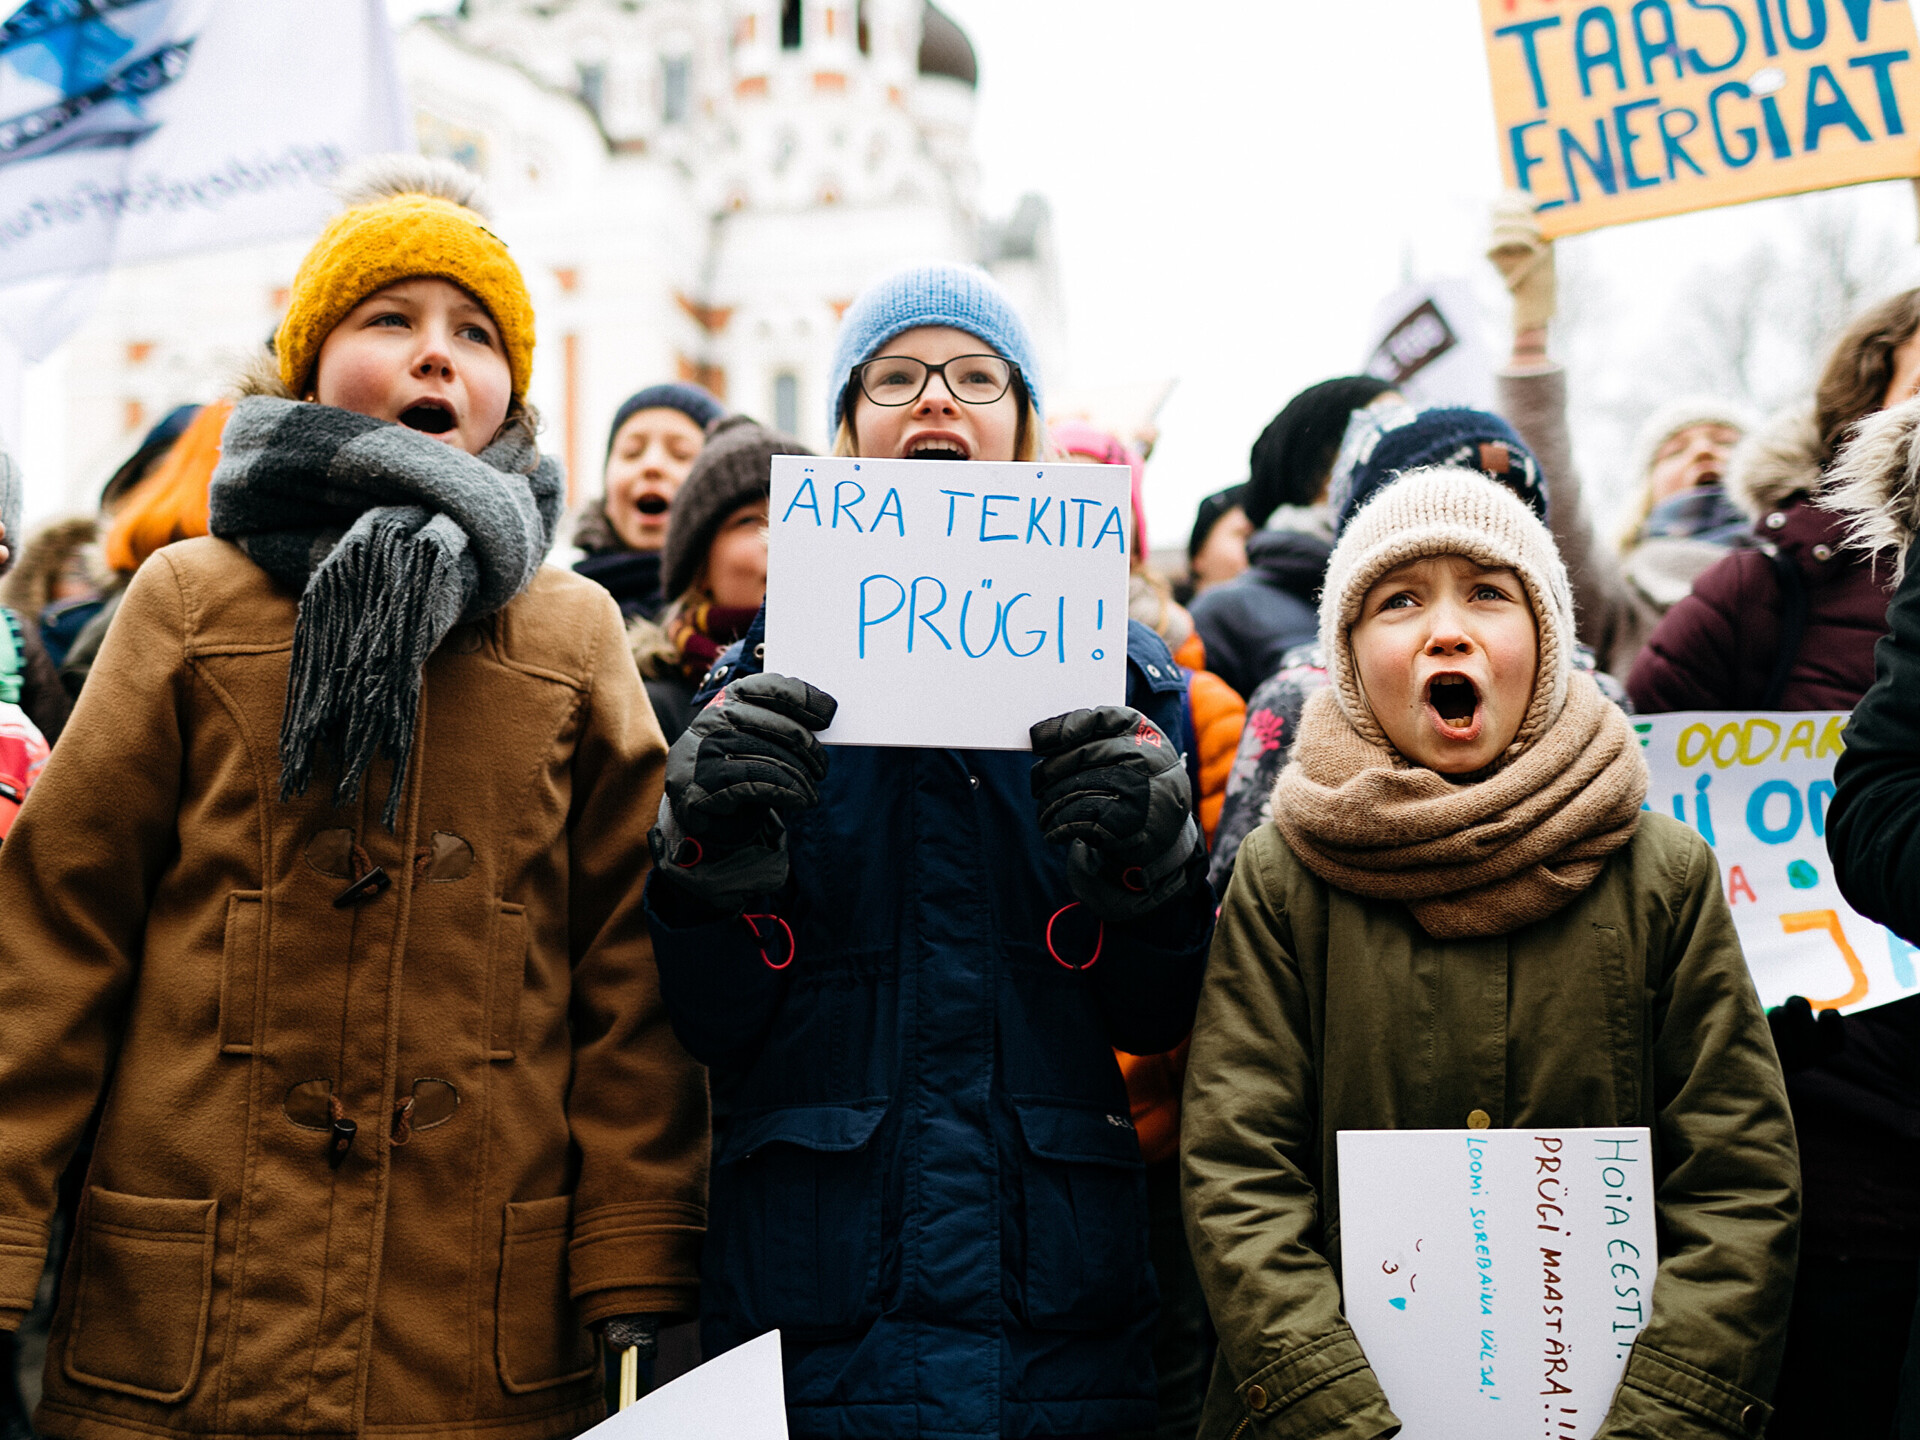 975dd7554c9 Gallery: Students in Estonia join #Fridays4Future climate protests | News |  ERR